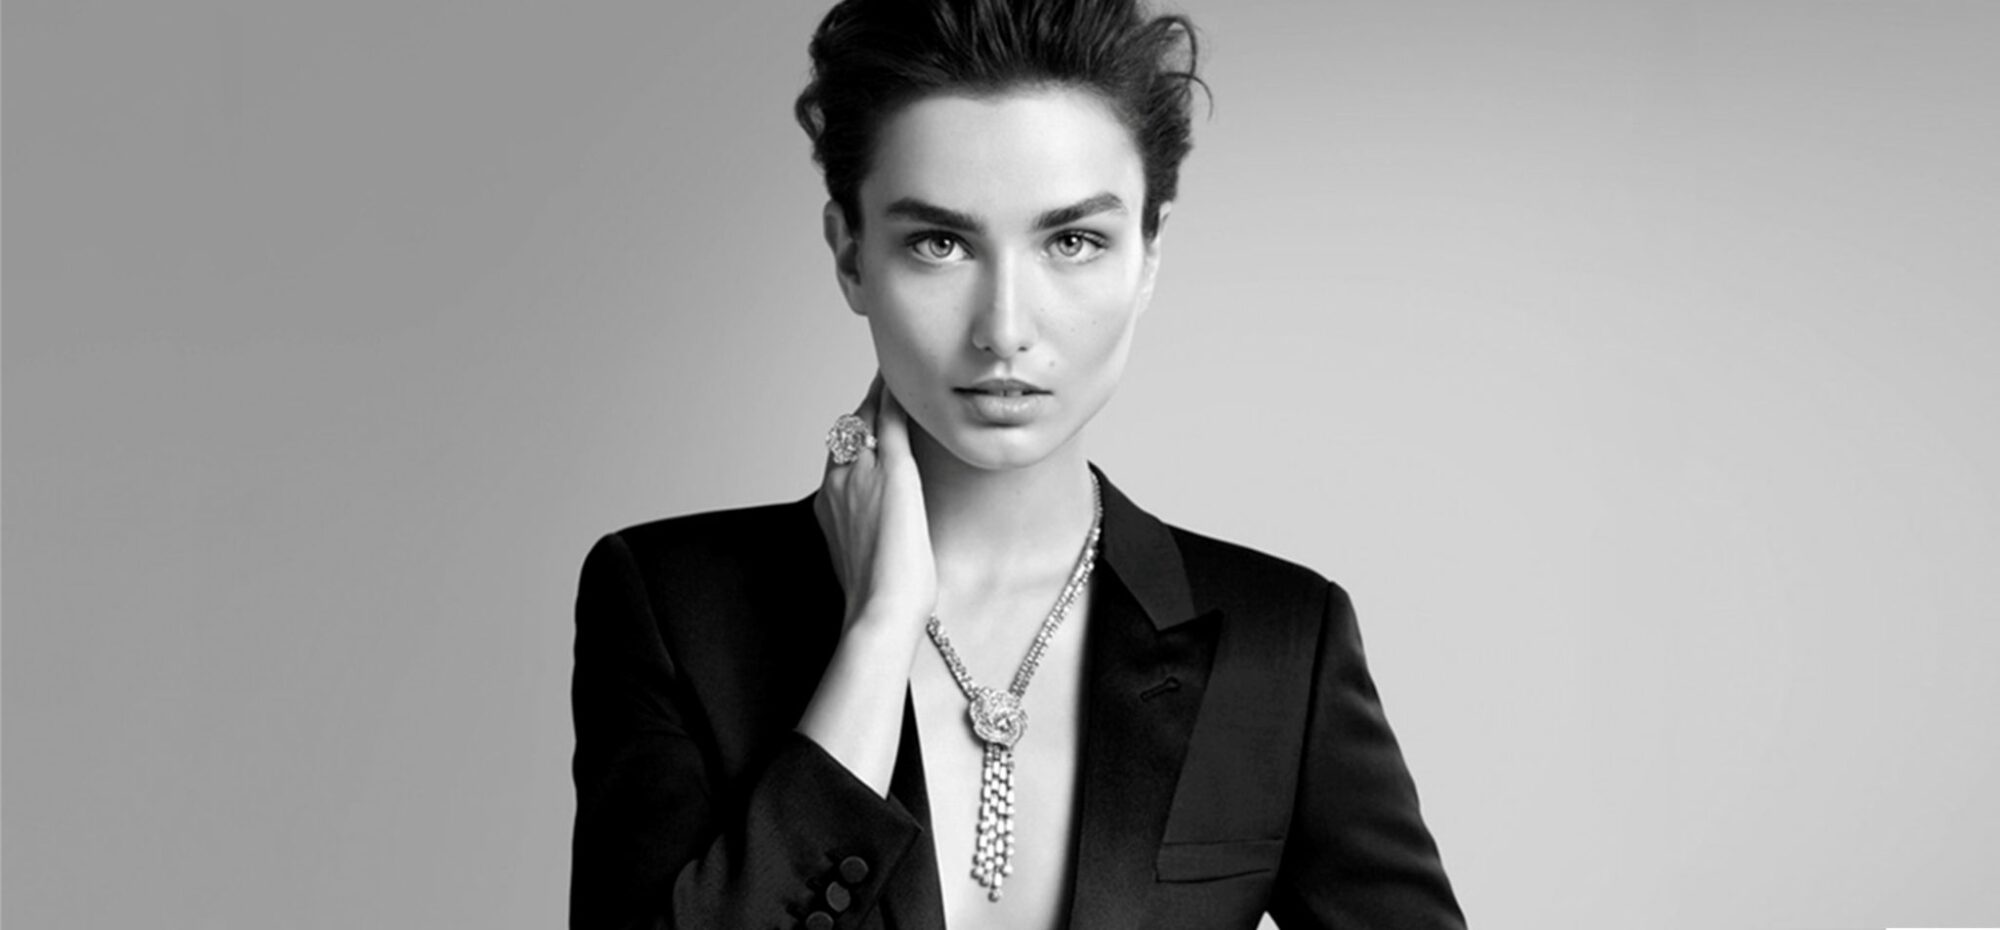 DE BEERS ARIA JEWELRY COLLECTION